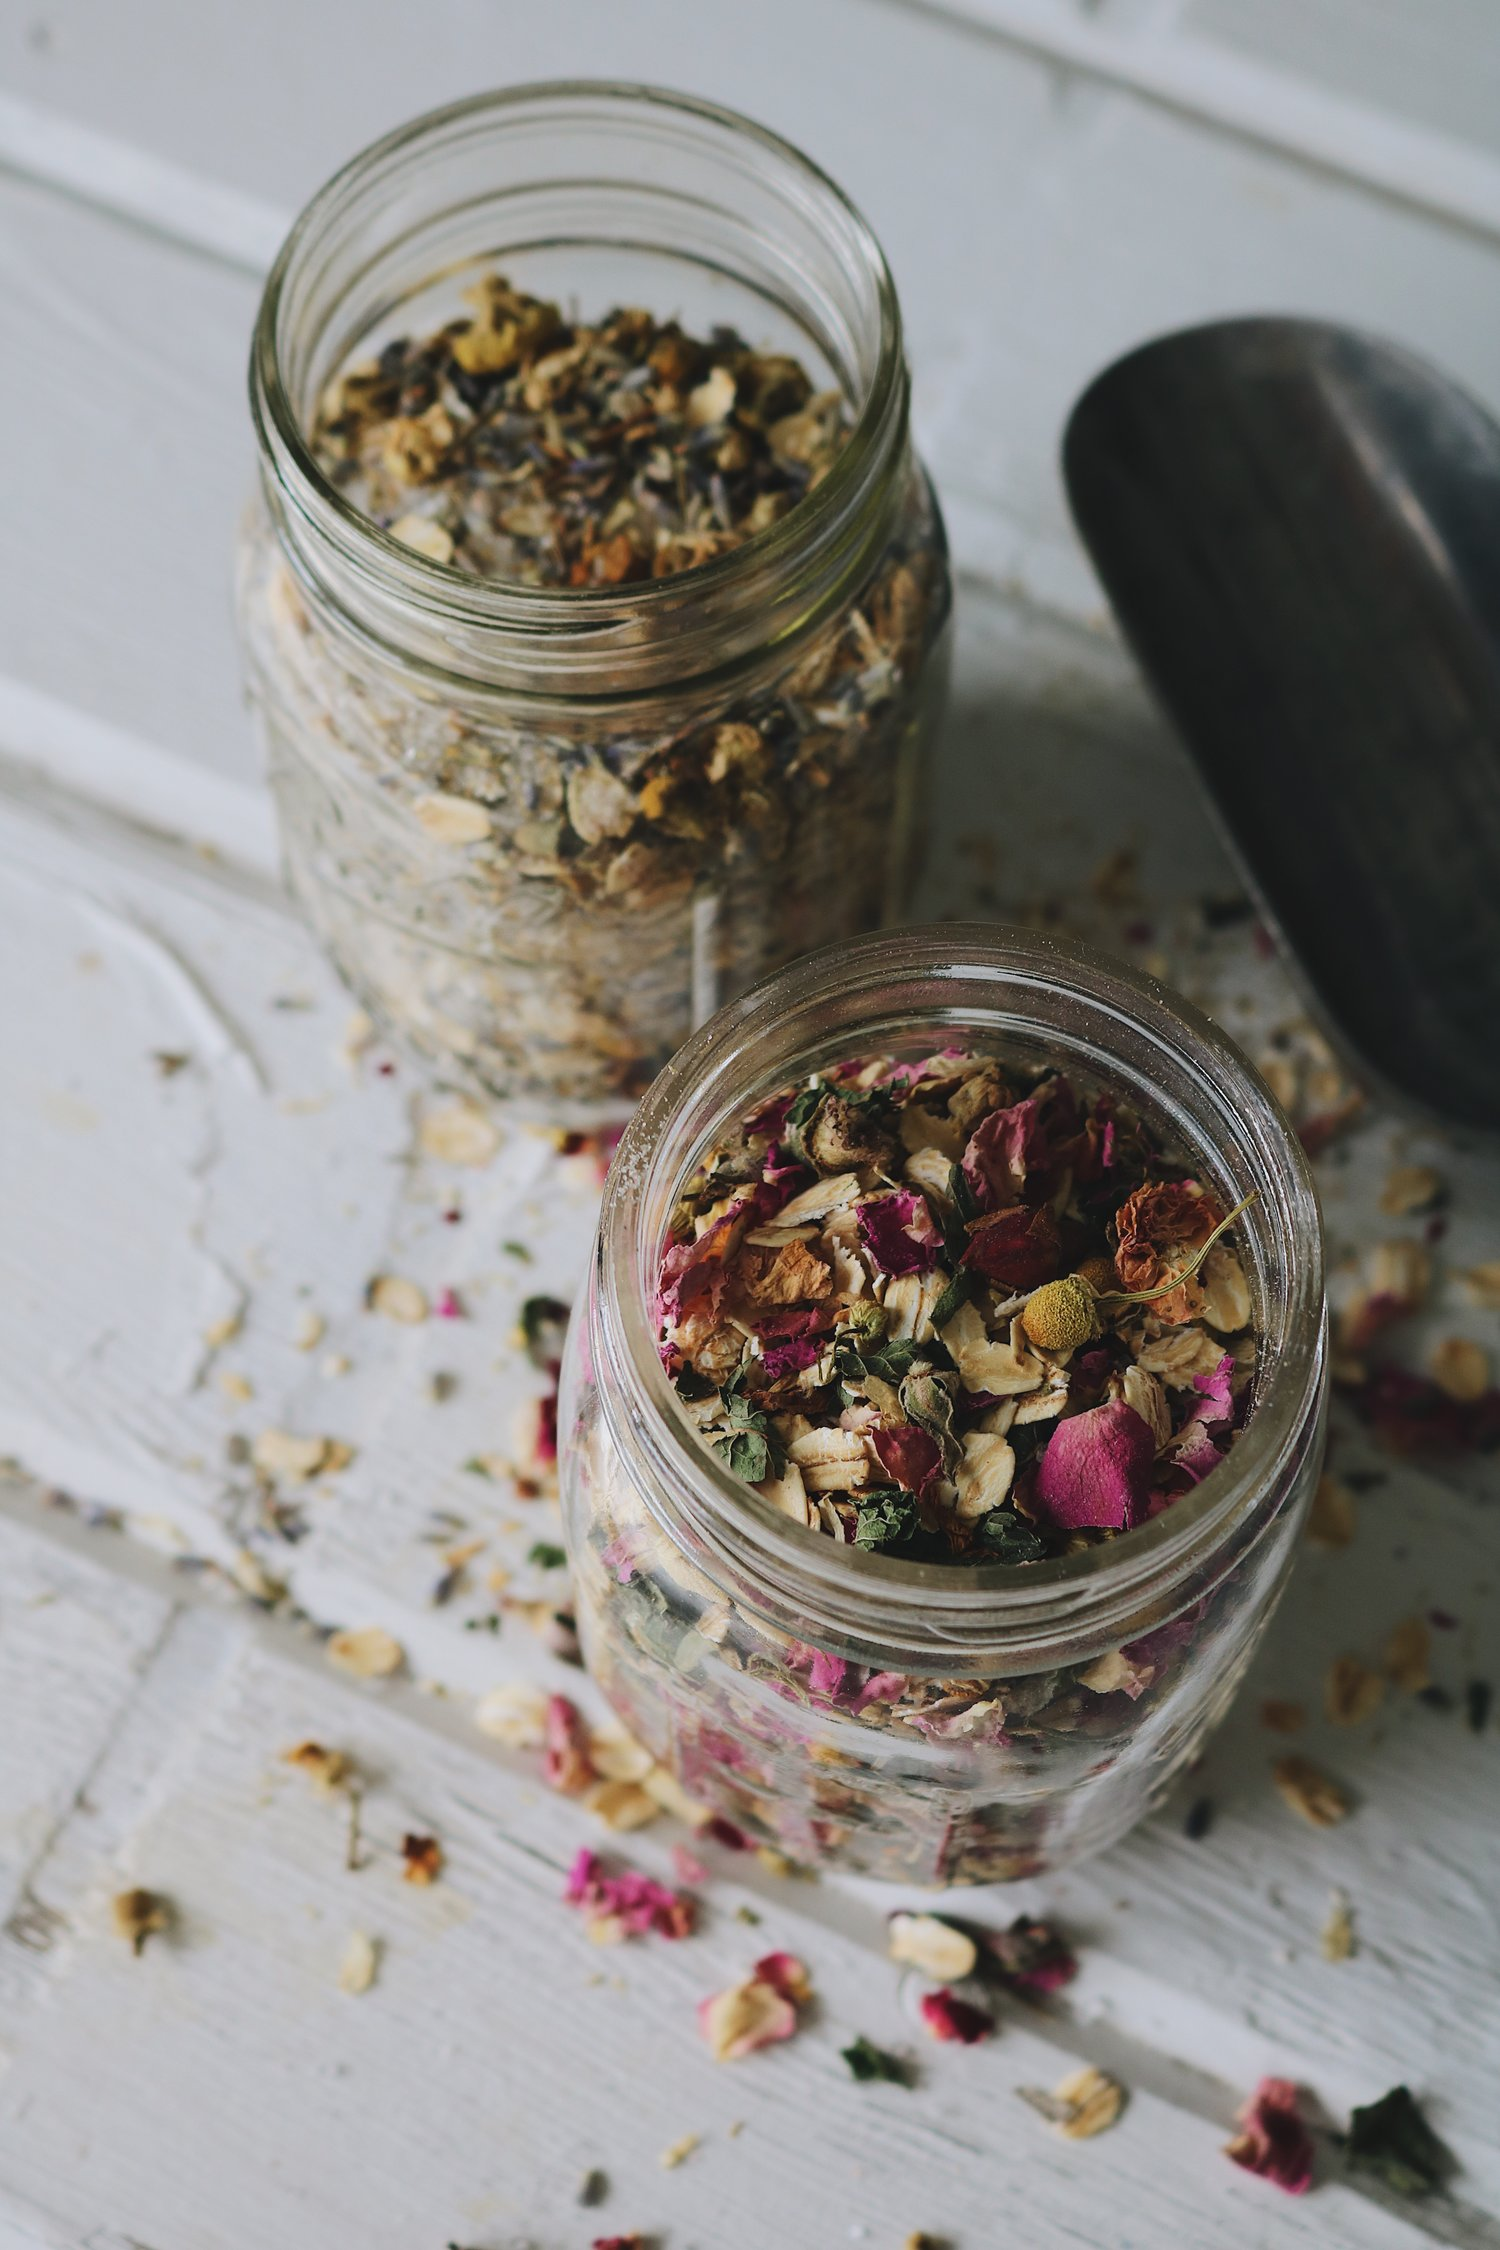 Our Favorite Handmade Herbal Gifts